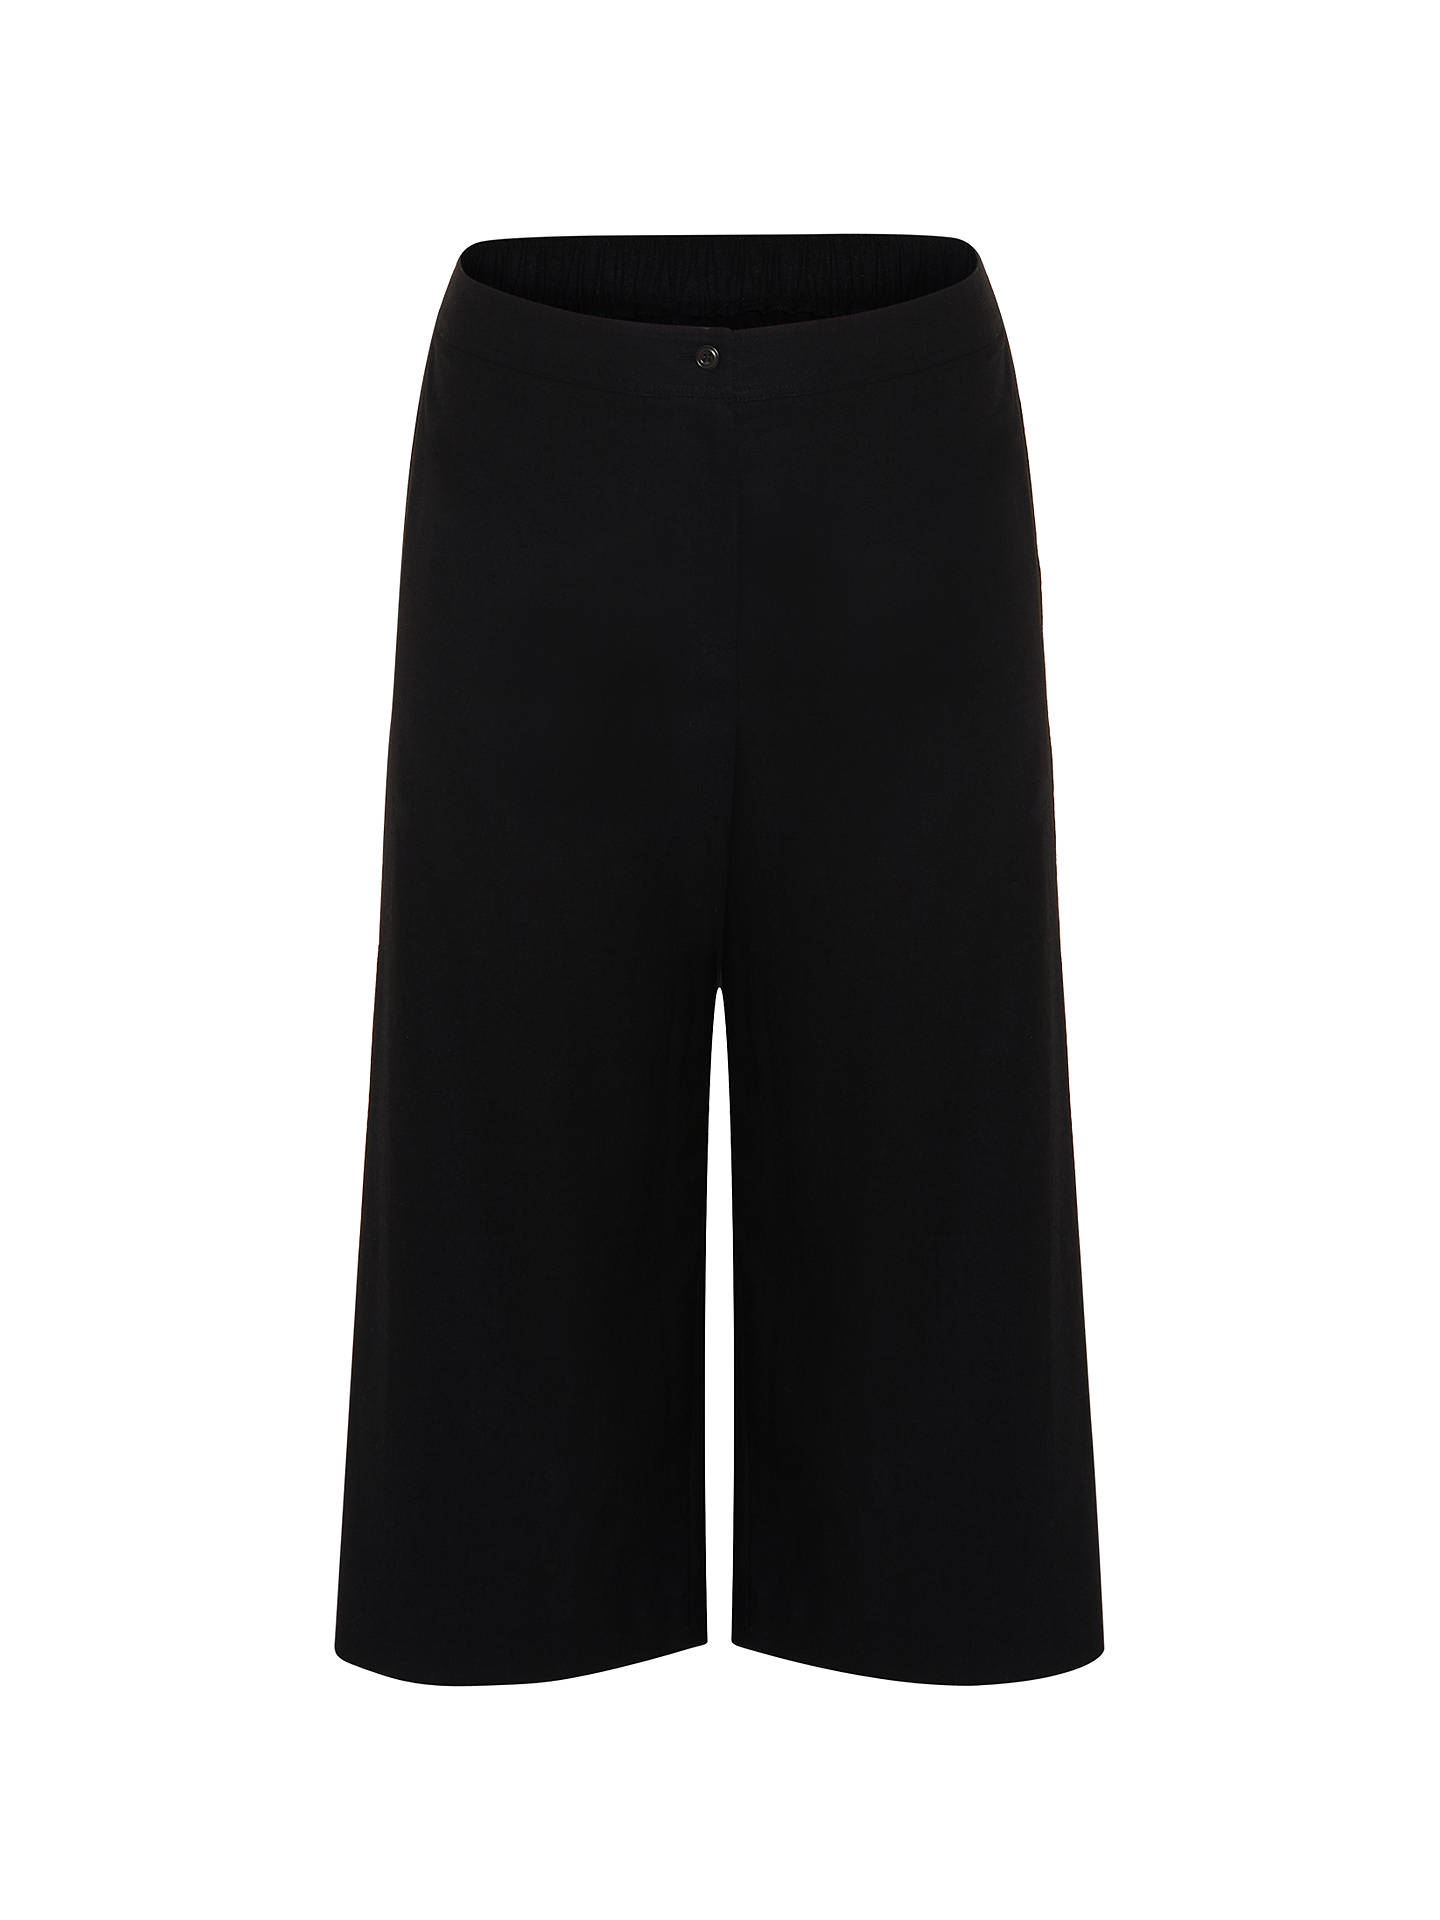 Buy Studio 8 Caila Cropped Linen Blend Trousers, Black, 12 Online at johnlewis.com